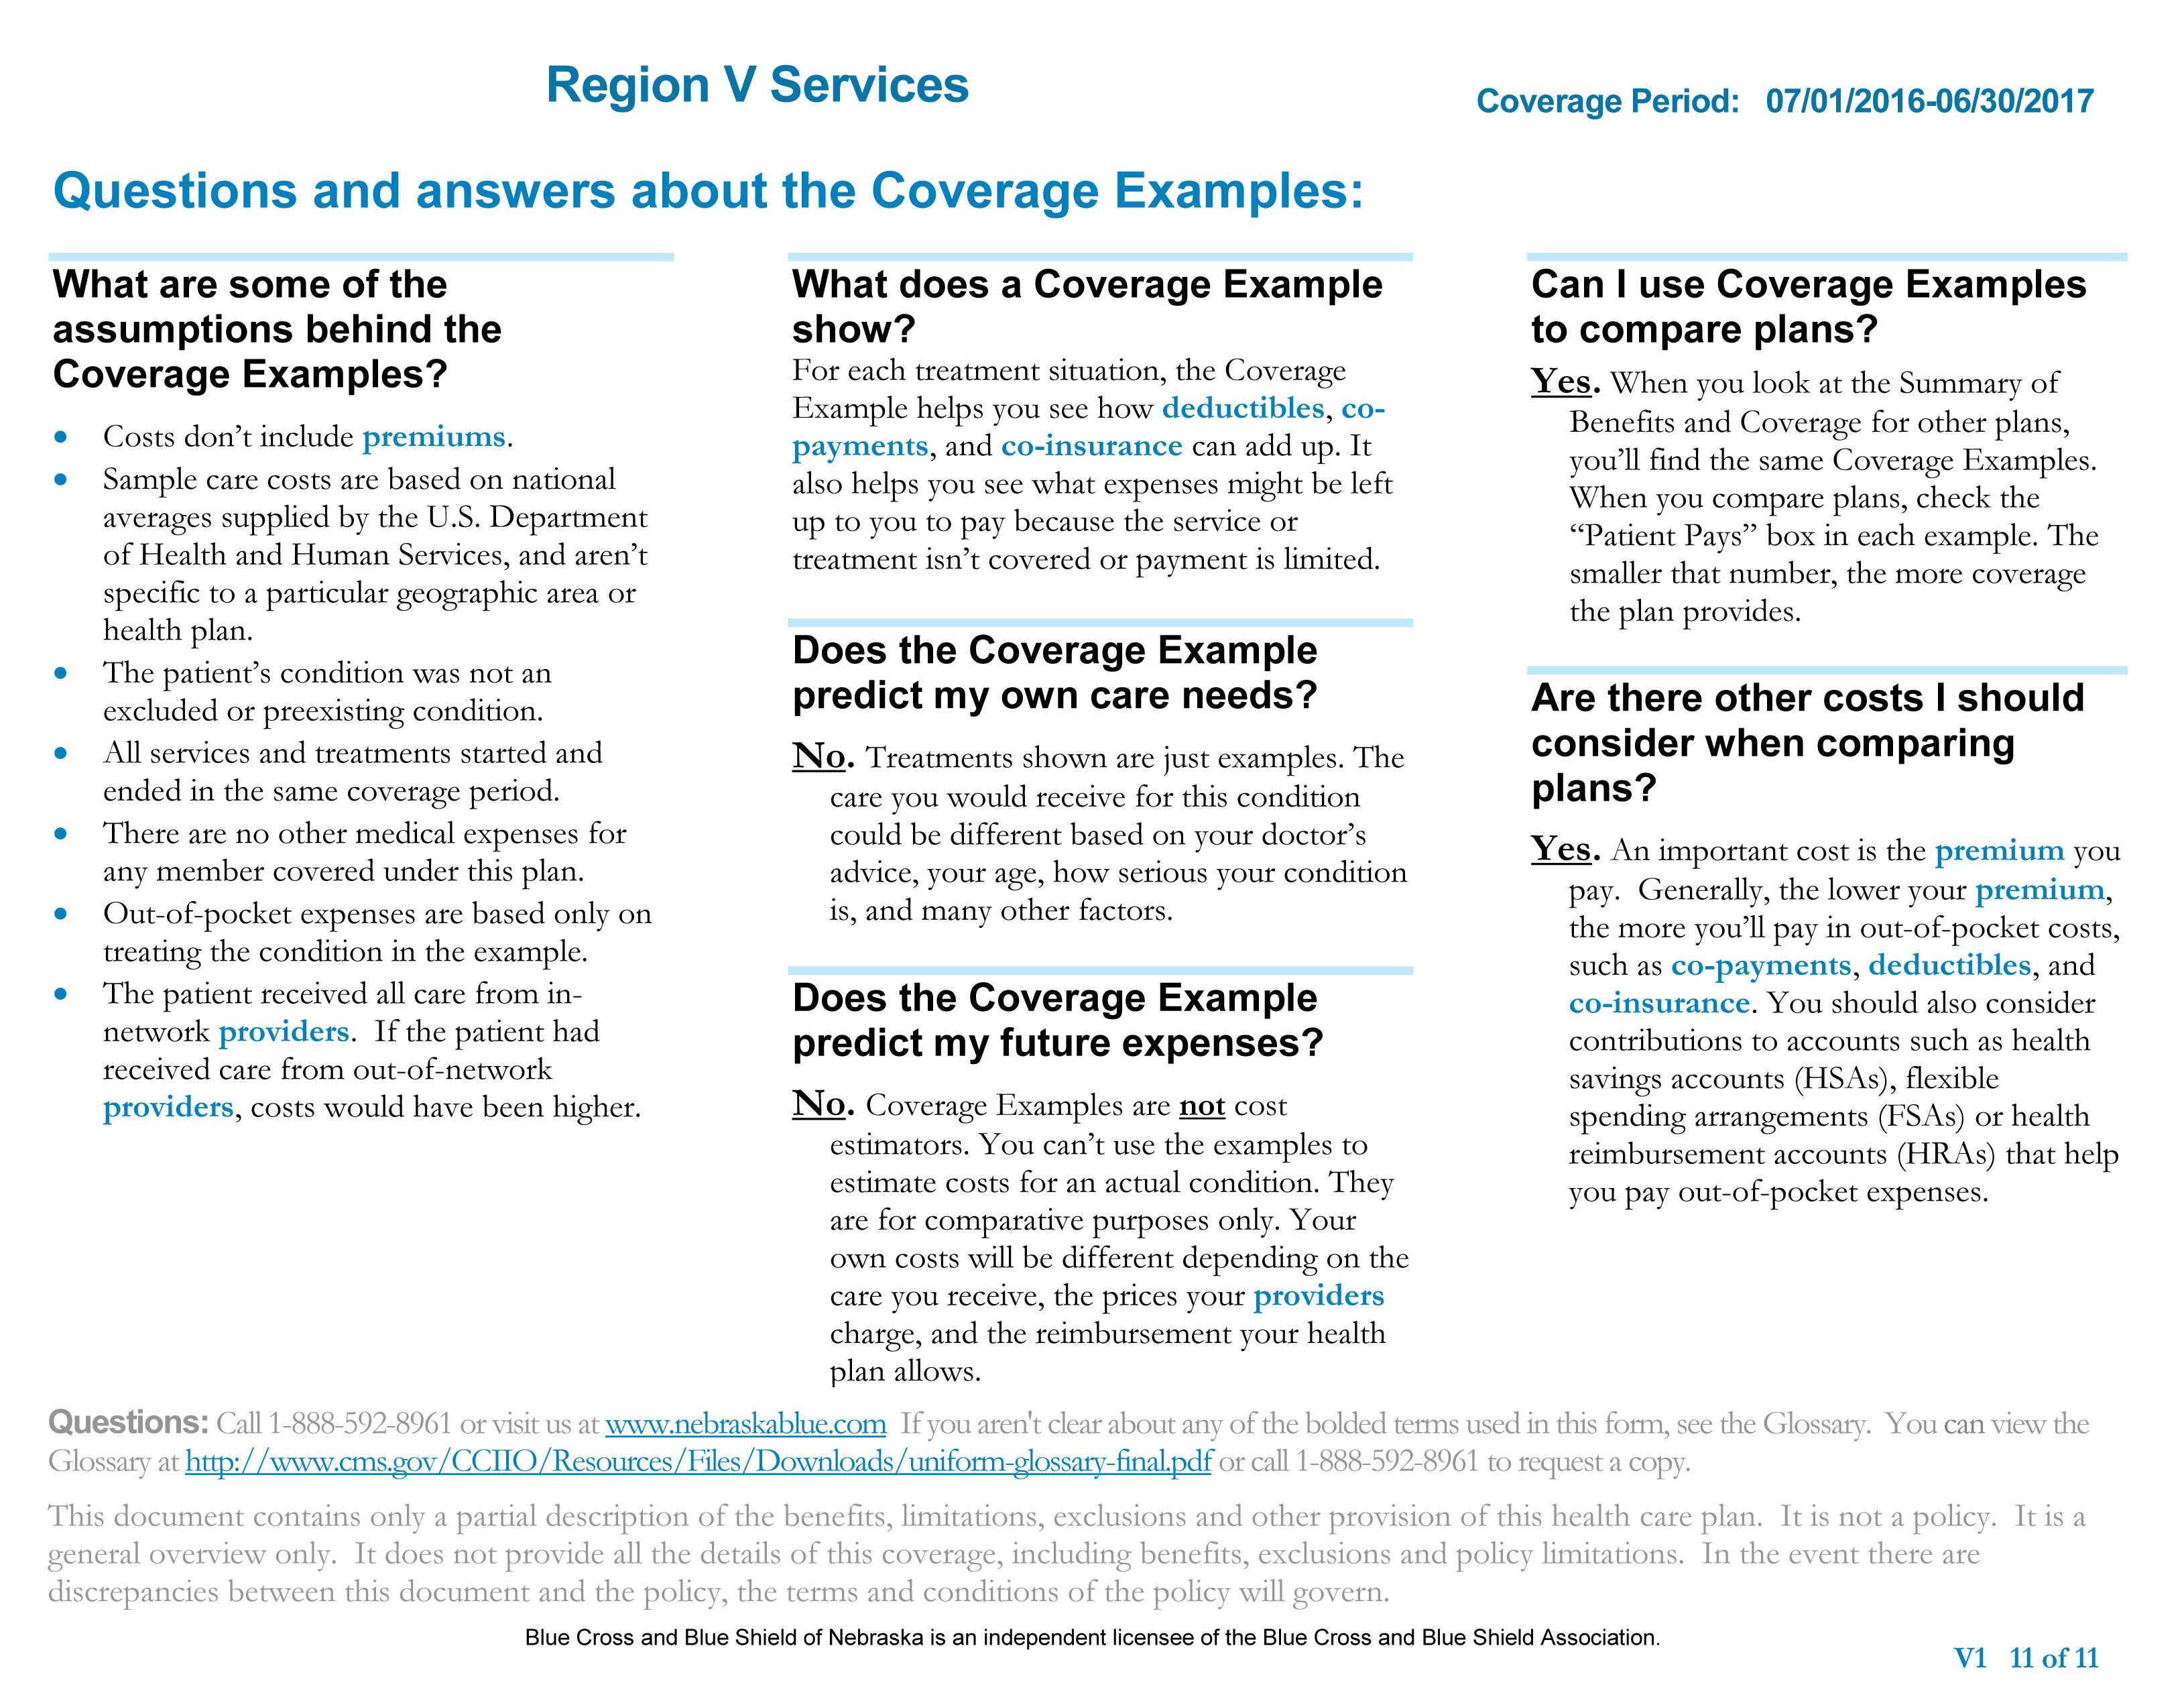 Region V Services Resources Employee Resources